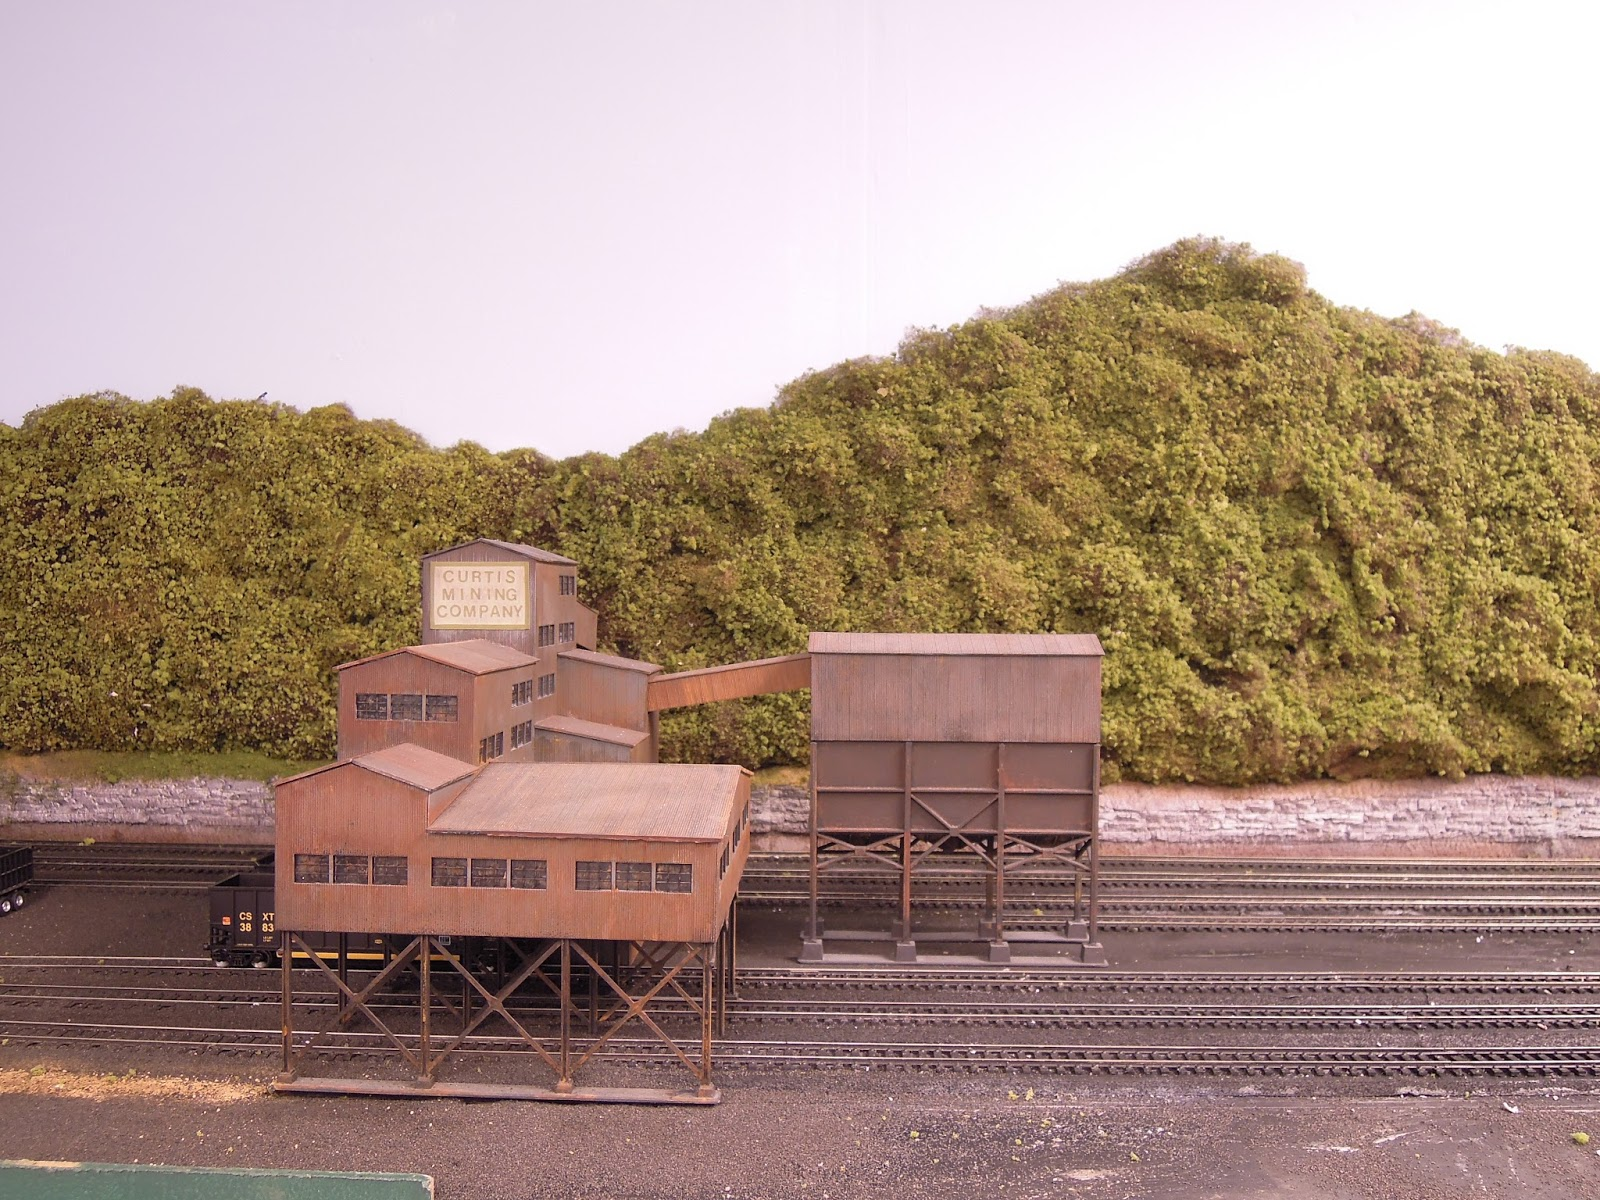 Paducah & Lake Erie Model Railroad: Coal Tipple and Forest